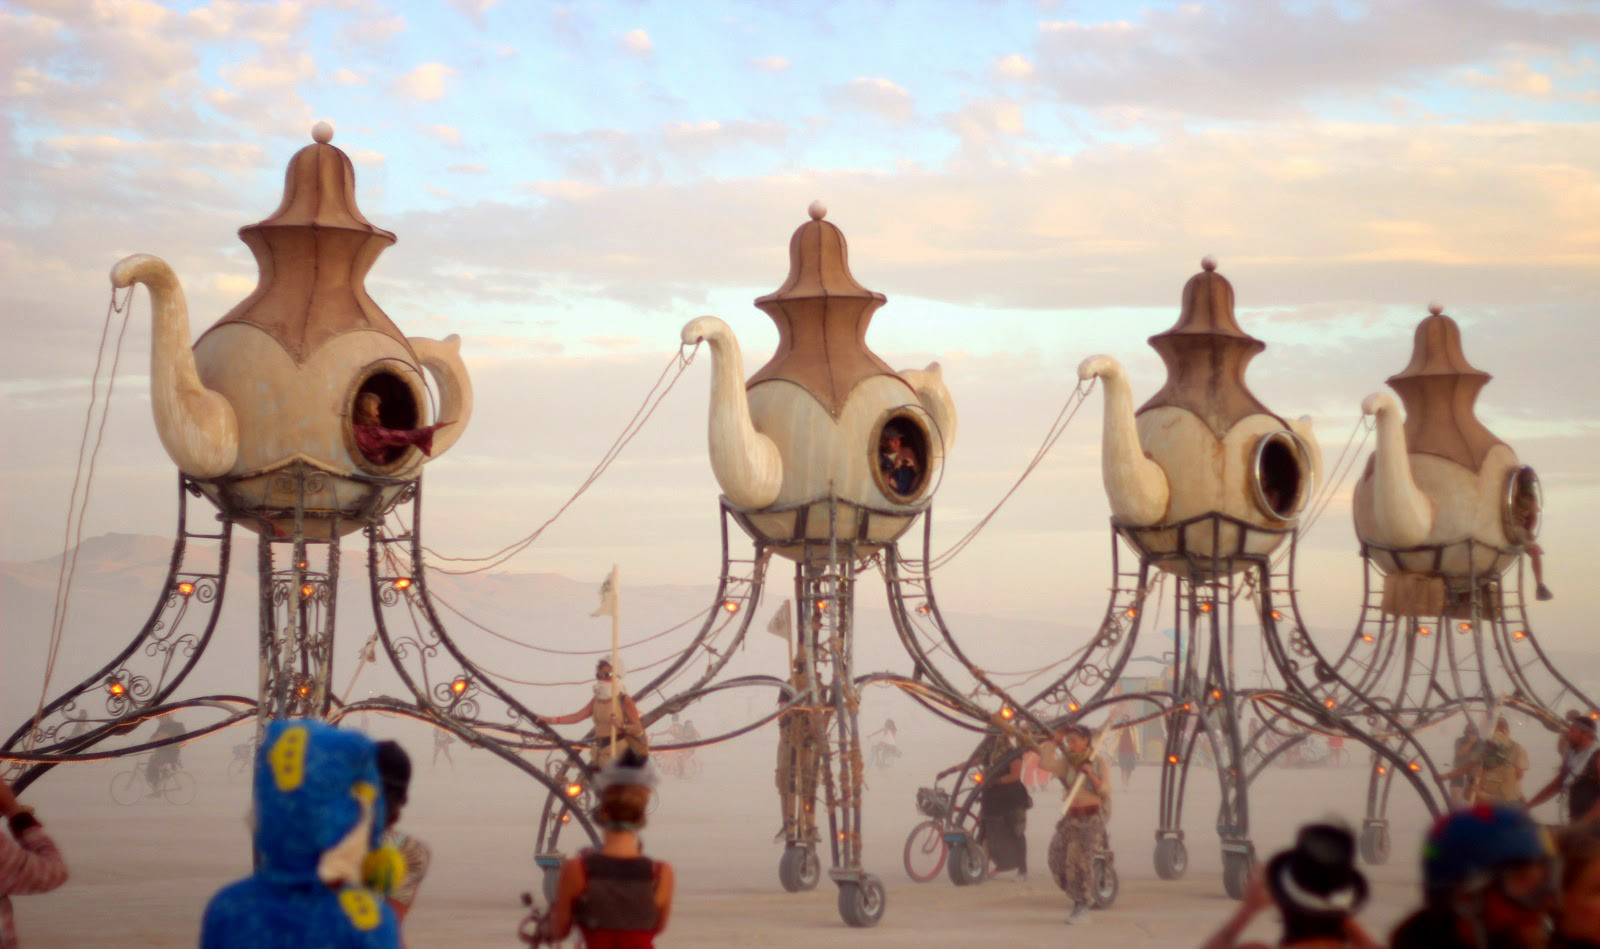 Lost_Tea_Party_Burning_Man_Art_Cars_2014_Tinka_Kalajzic